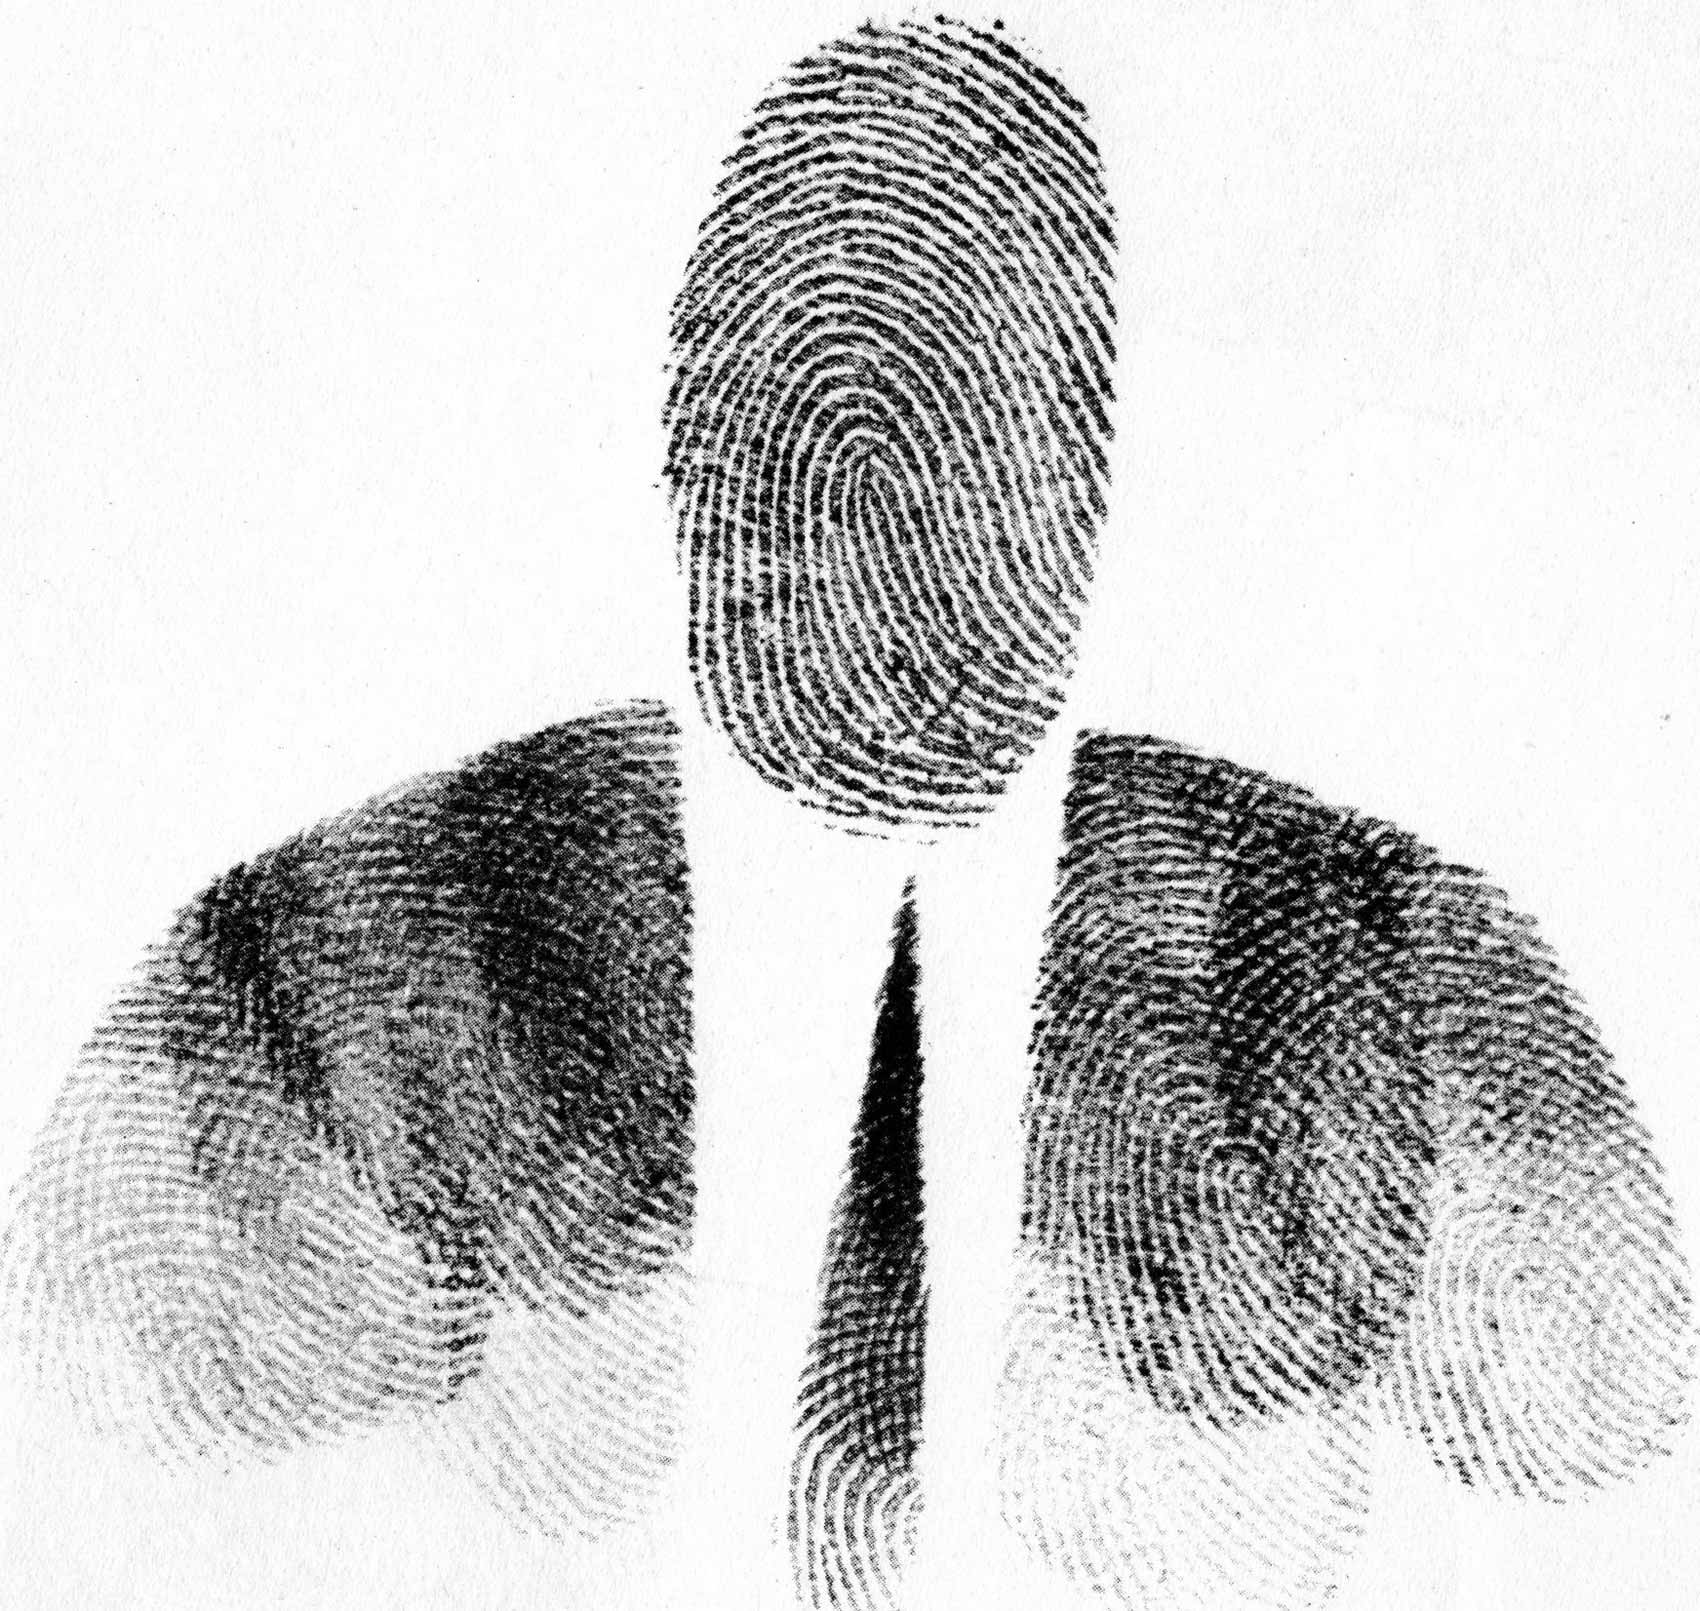 <em>Passport Photo</em>, 1953. Fingerprint on paper. Originally published in Steinberg, <em>The Passport</em>, 1954.